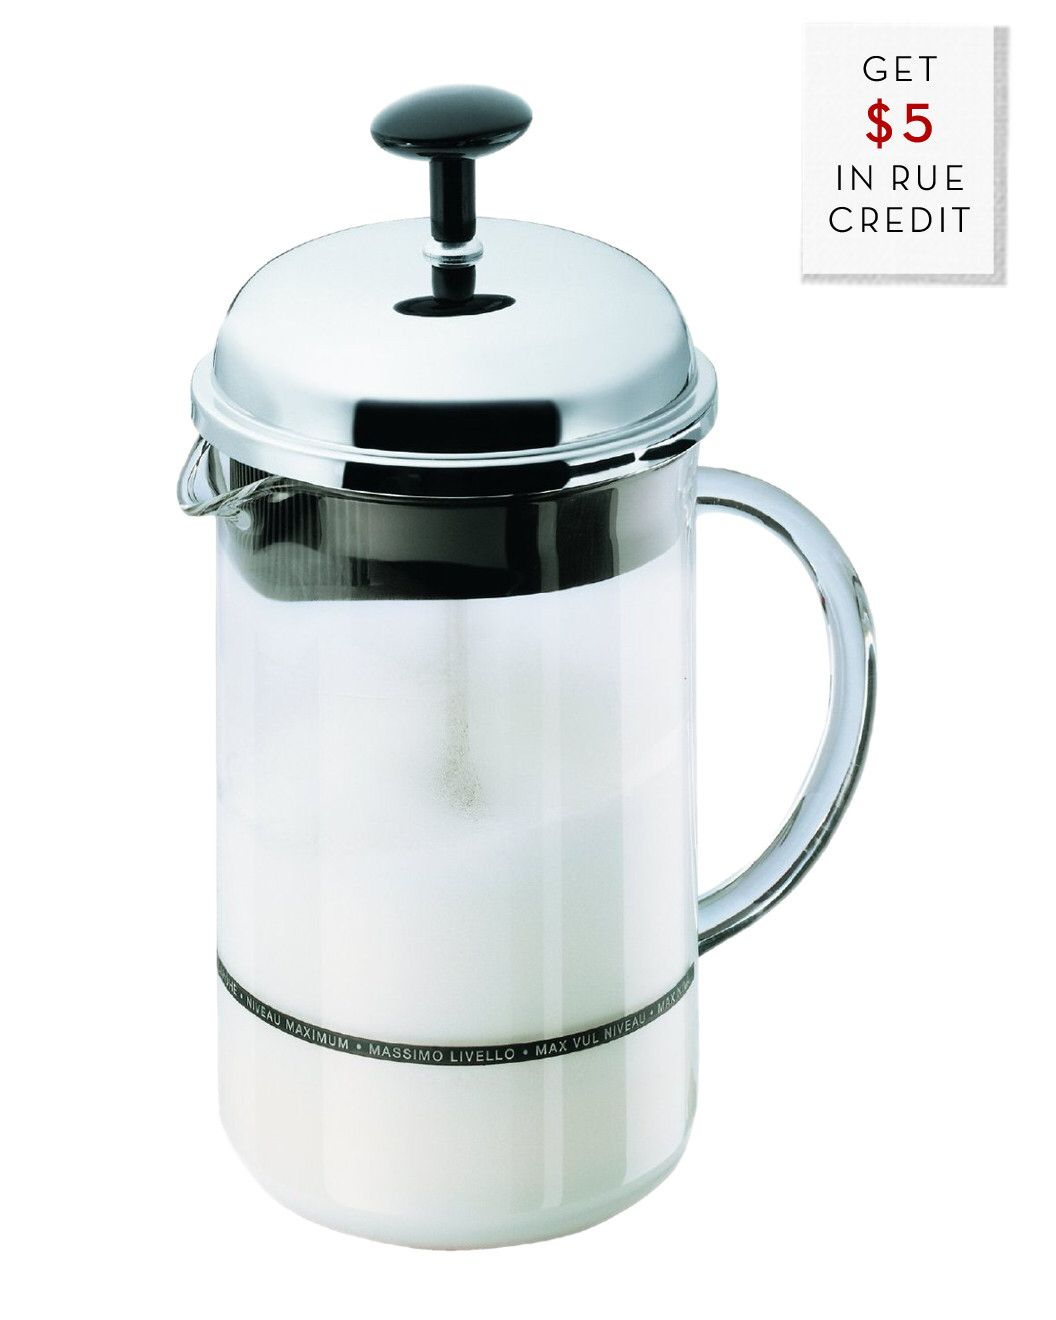 You need to see this Bodum 8oz Milk Frother on Rue La La Get in and